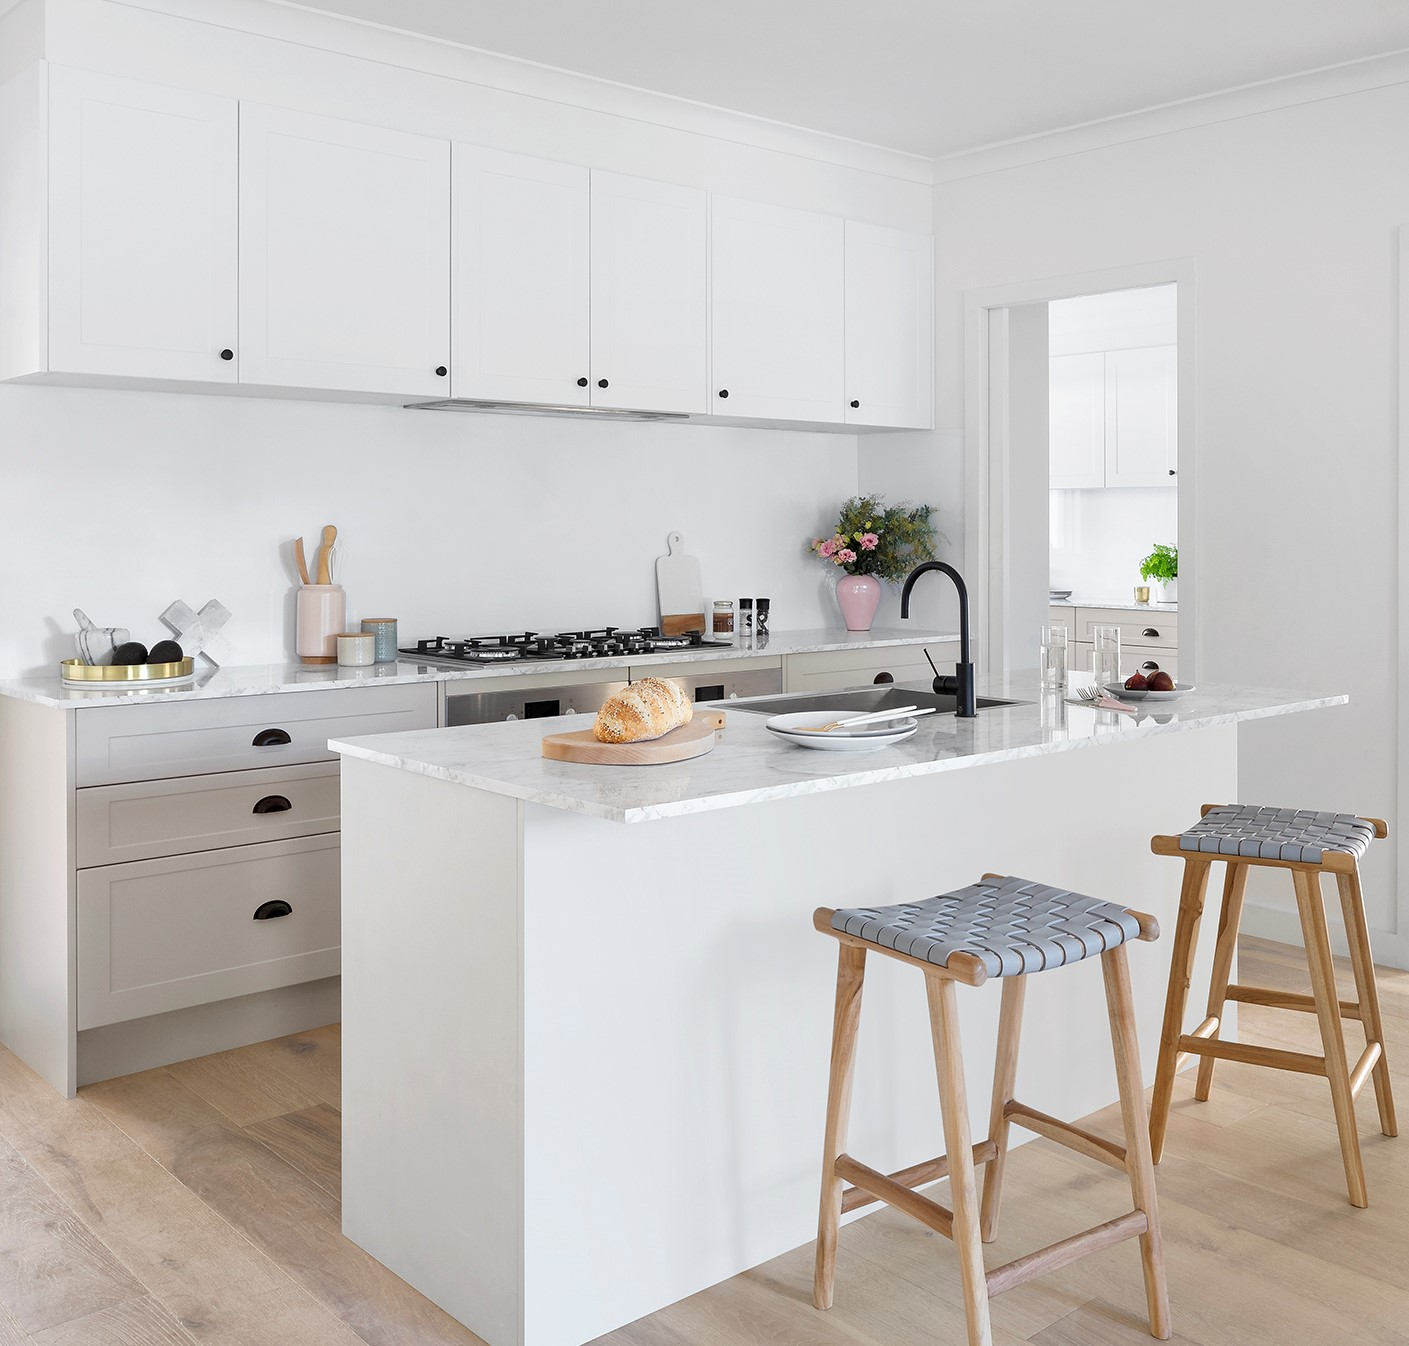 Kaboodle Kitchen: Design, Build And Renovate Your Own